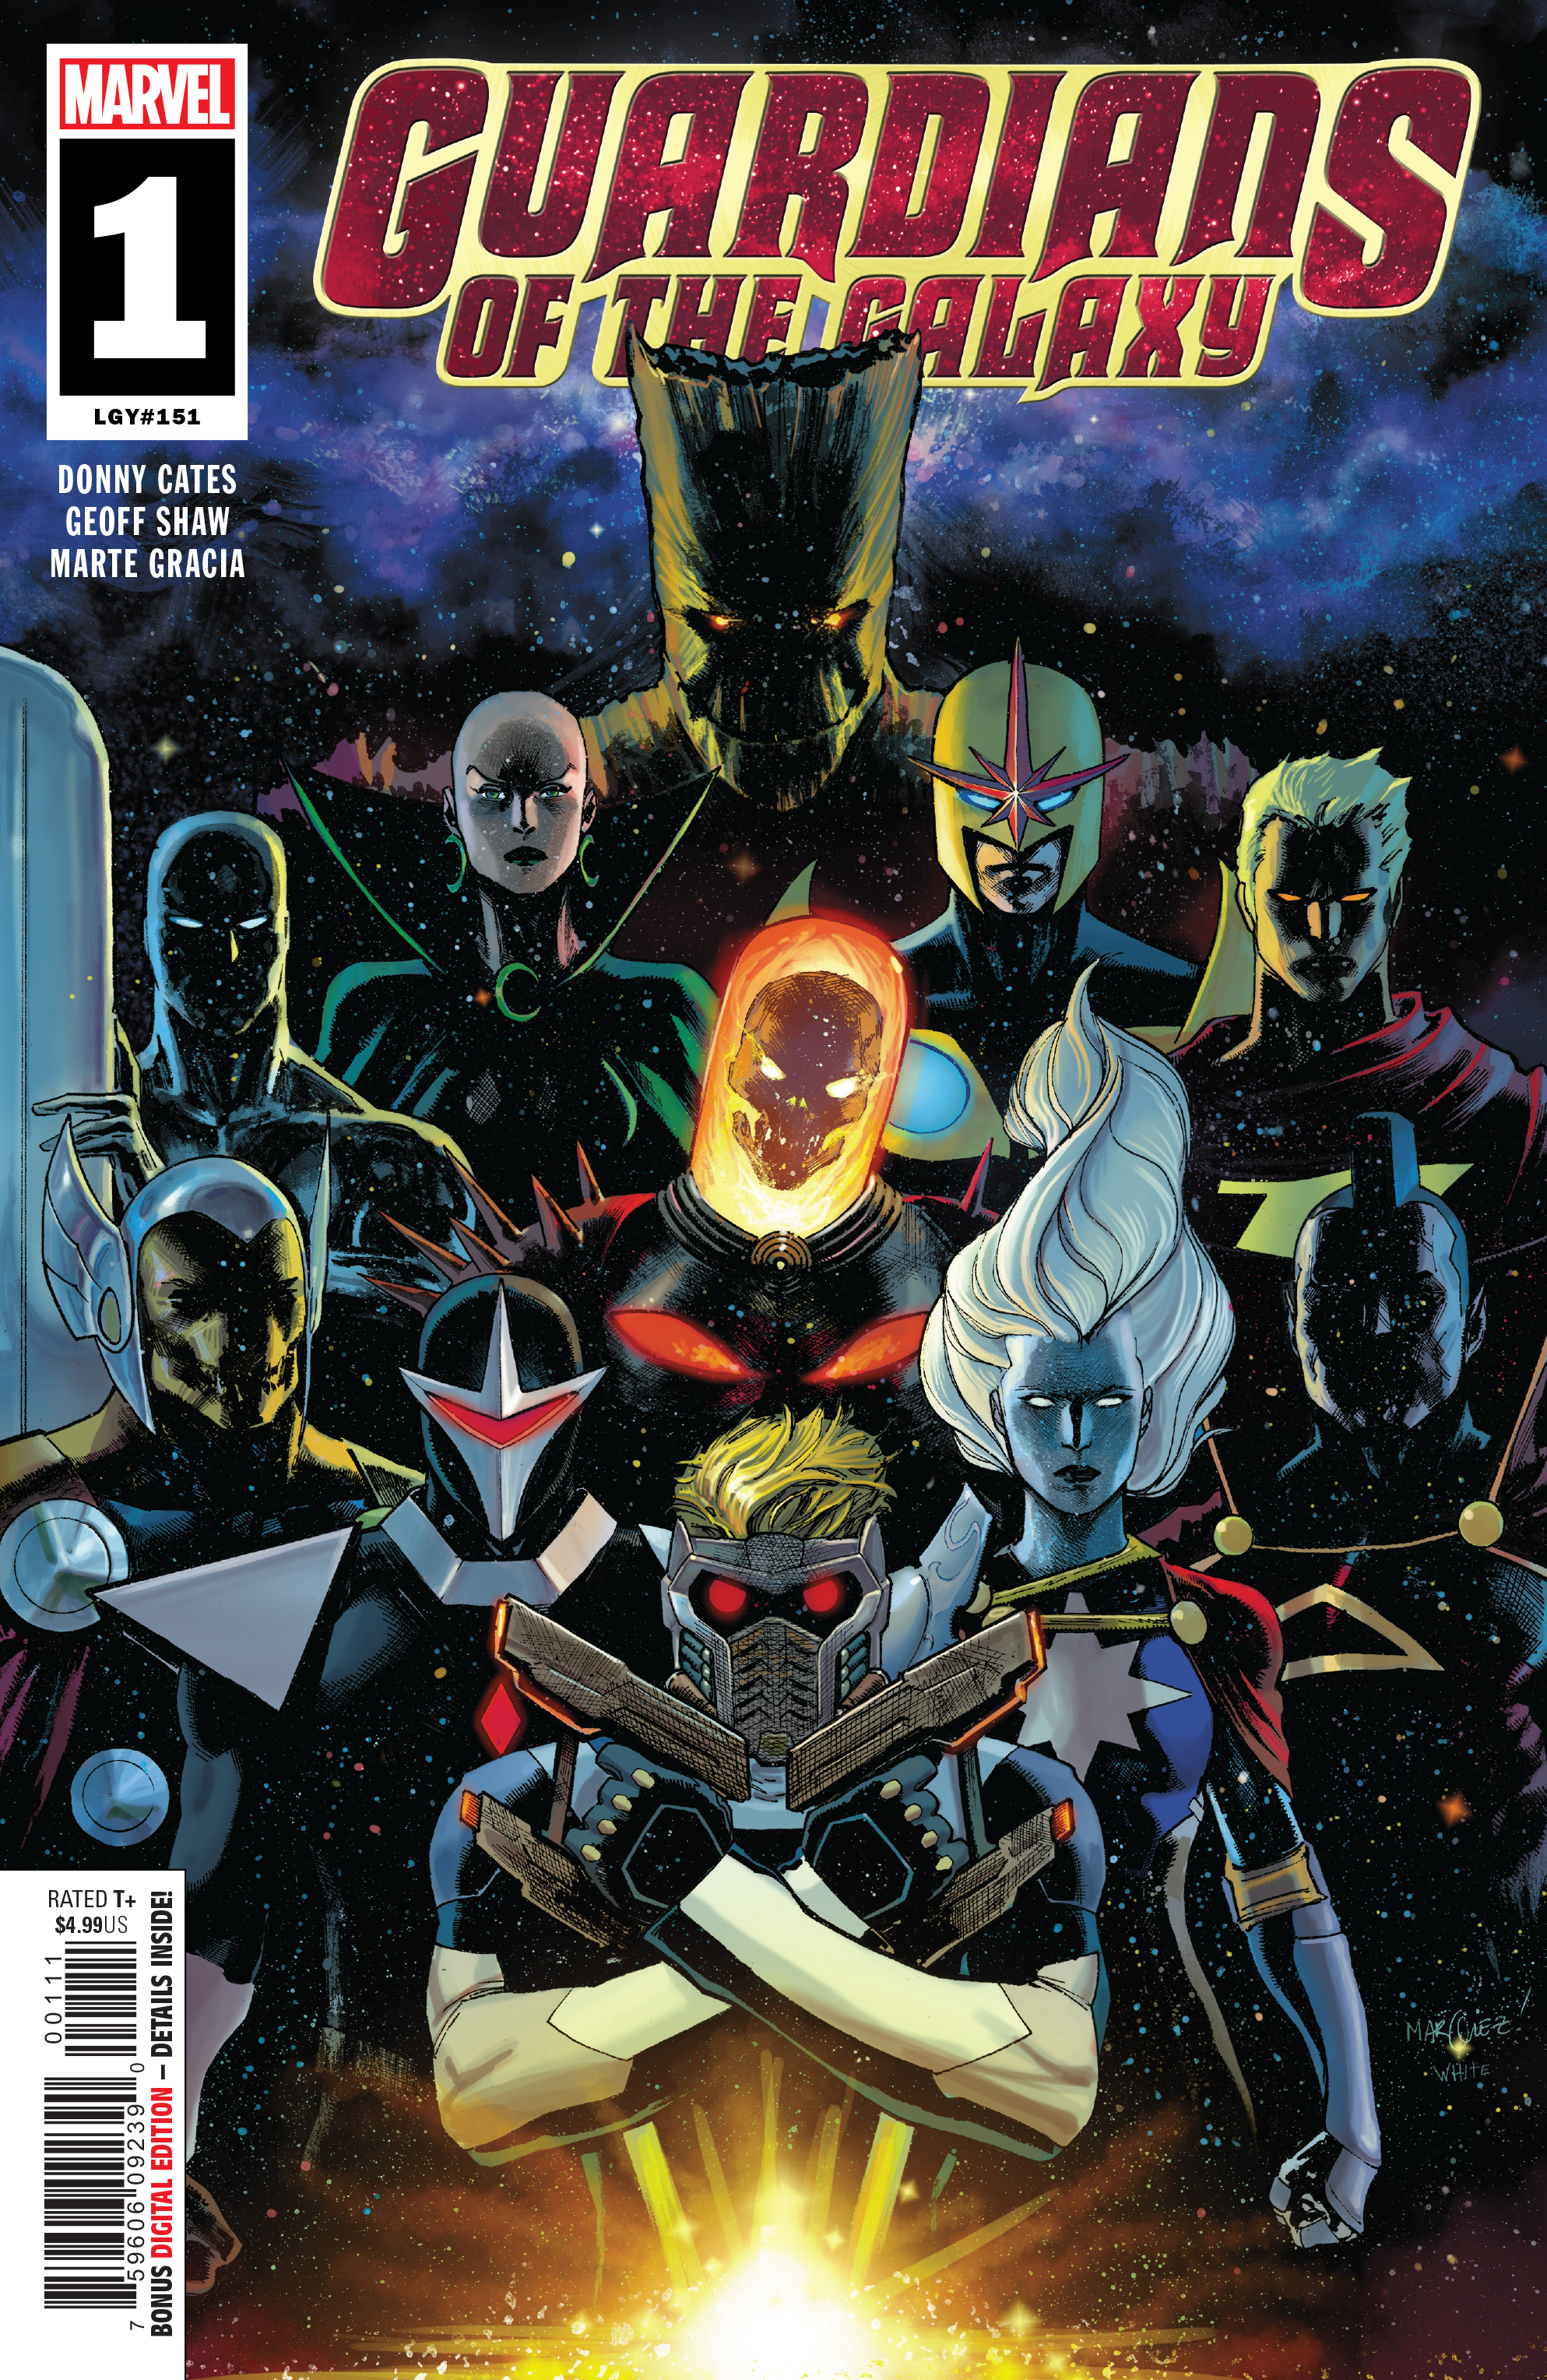 NOV180771 - GUARDIANS OF THE GALAXY #1 - Previews World